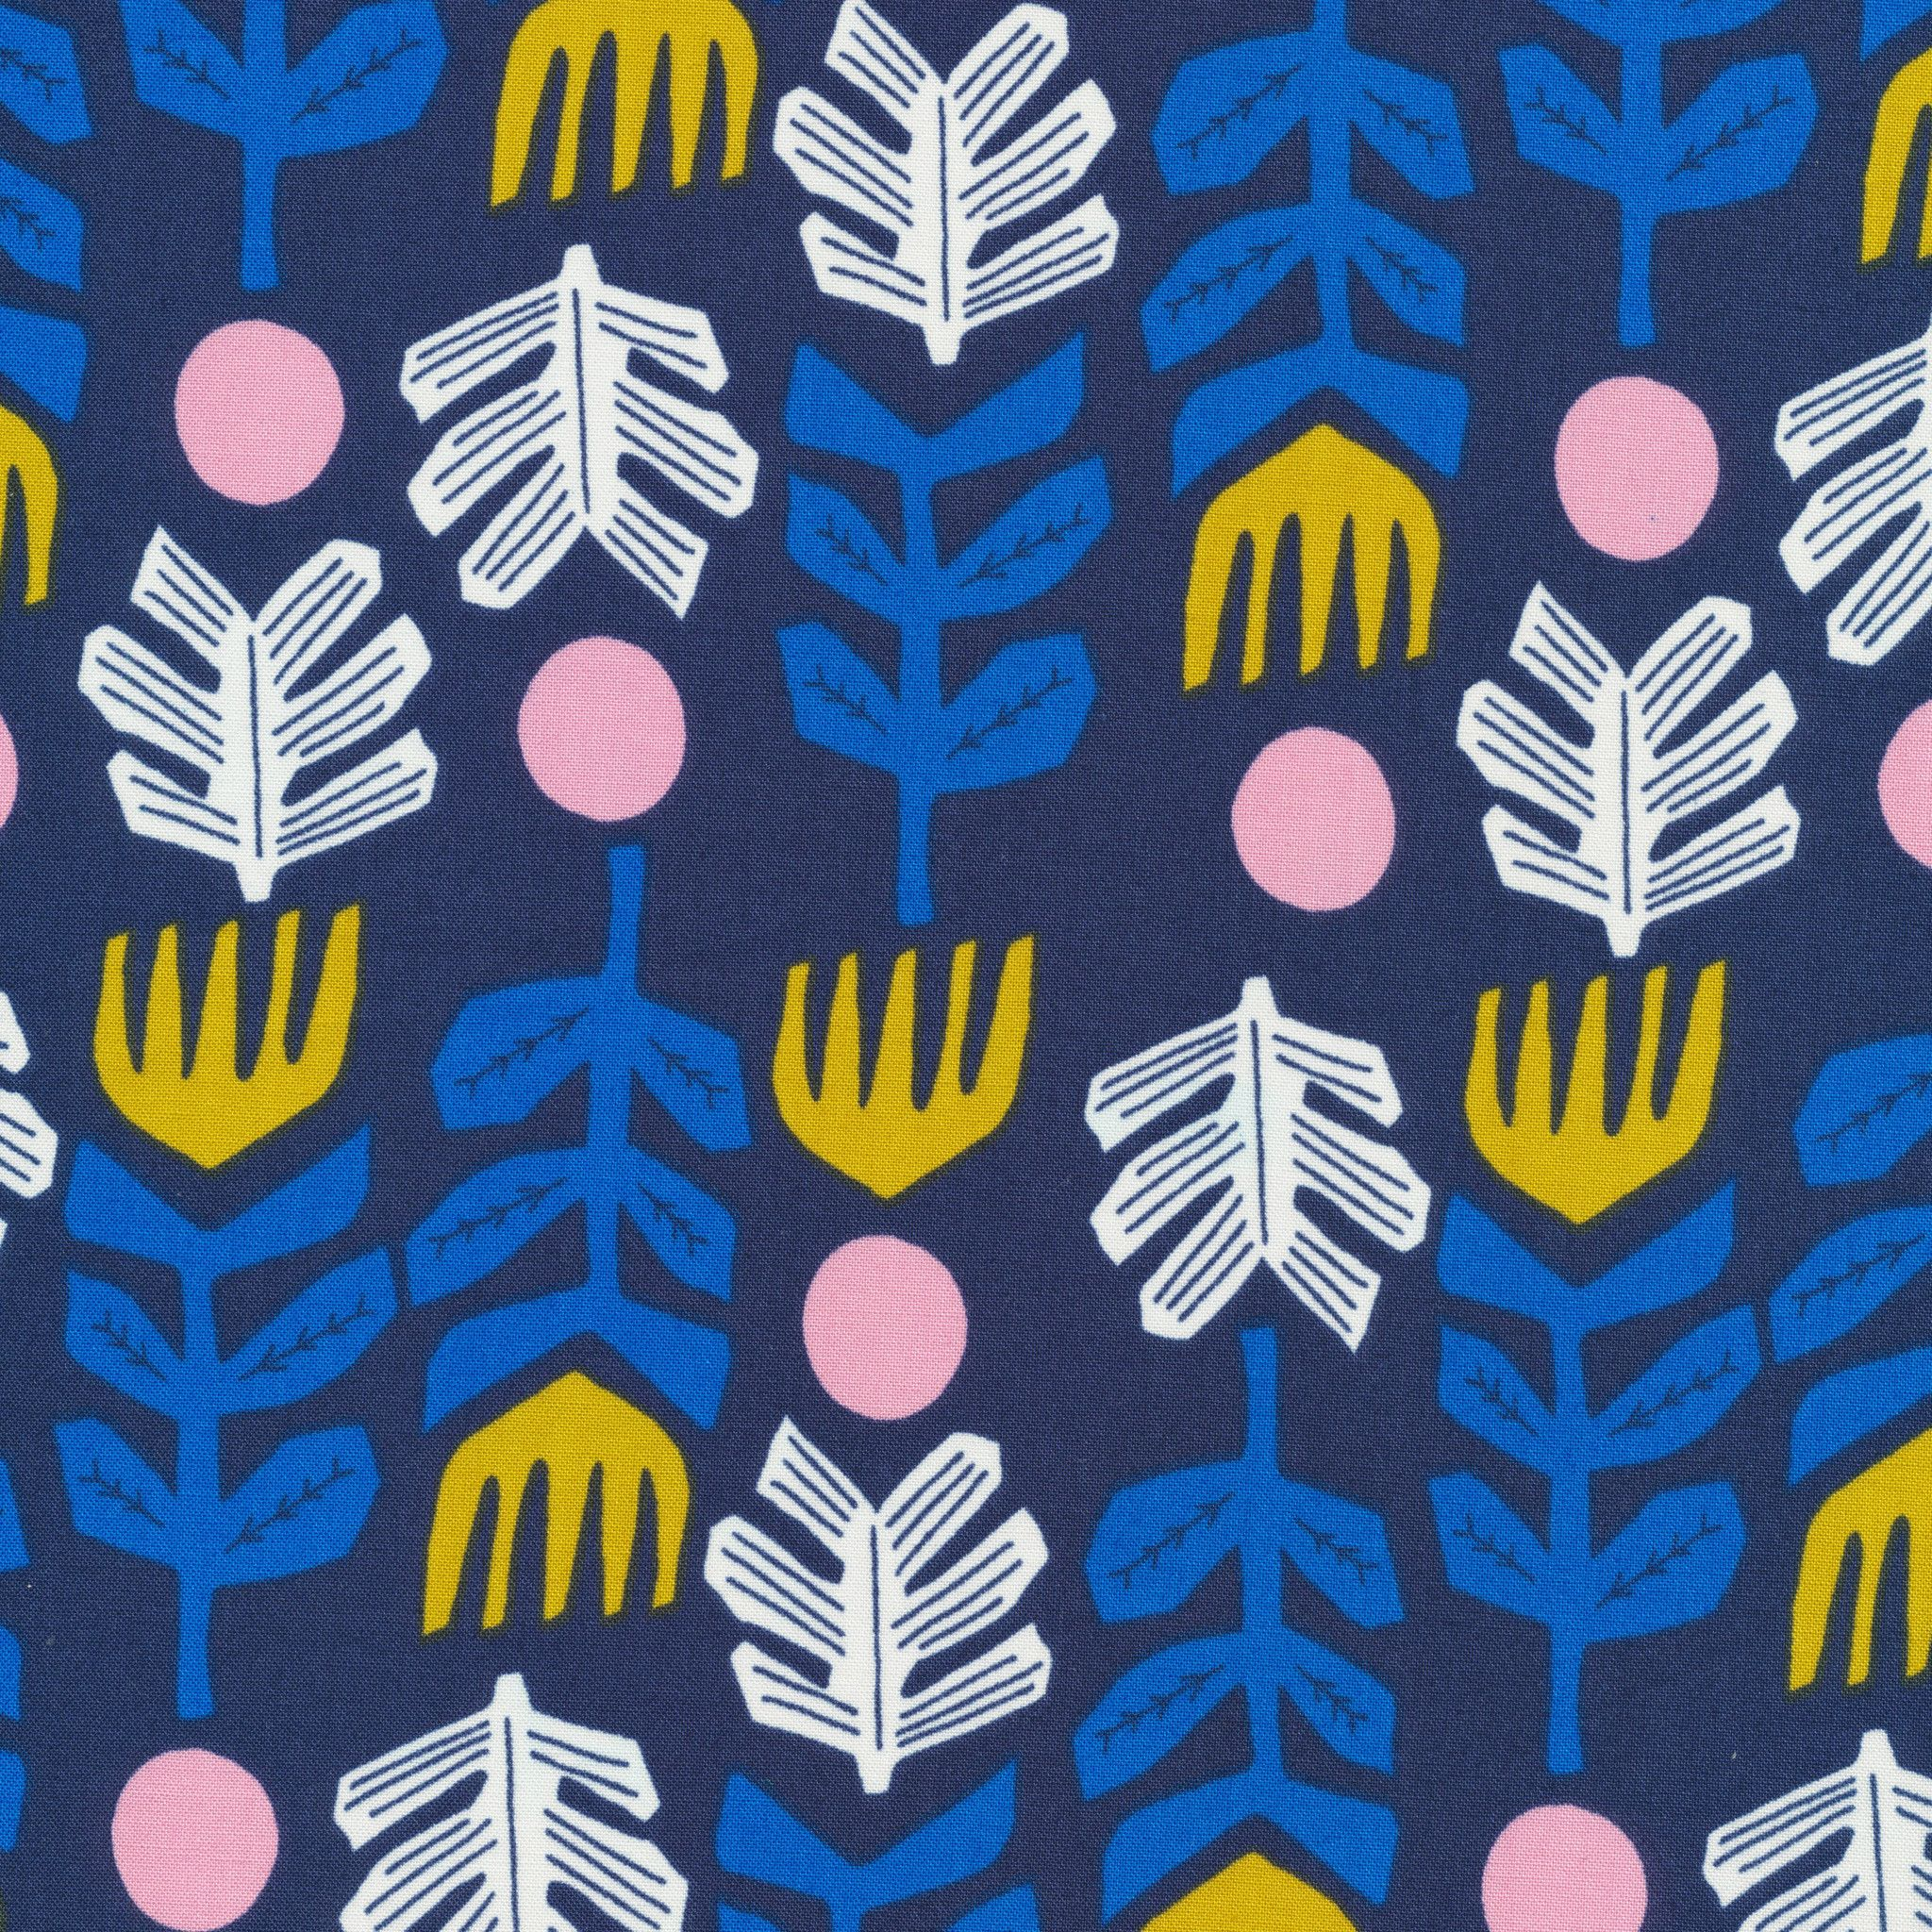 Big Foot Navy - Lore Collection By Leah Duncan for Coud 9 (5208.52.00.00) Quilters Woven